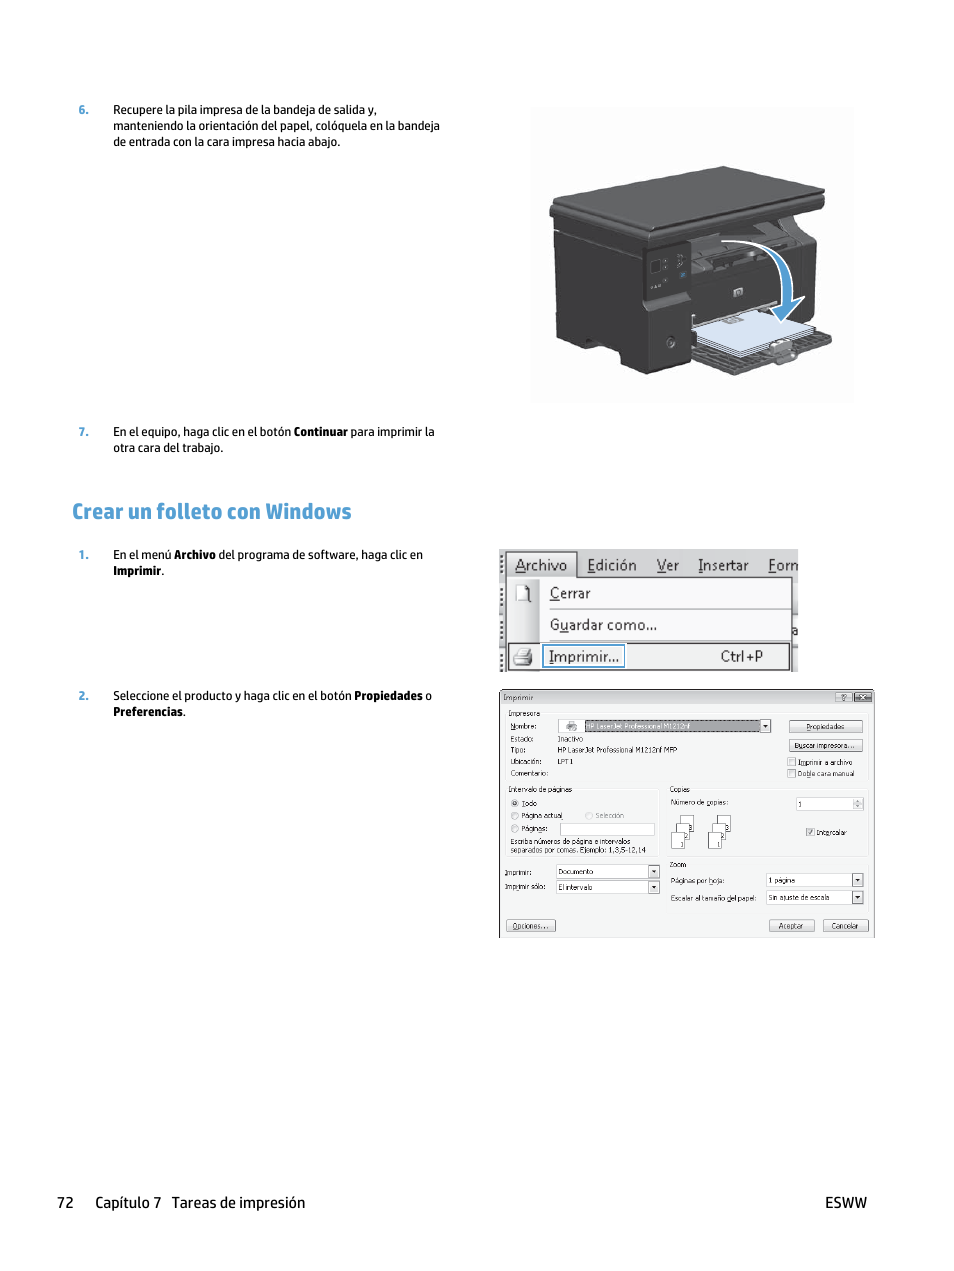 Crear un folleto con windows | HP laserjet m1212nf Manual del usuario |  Página 86 /